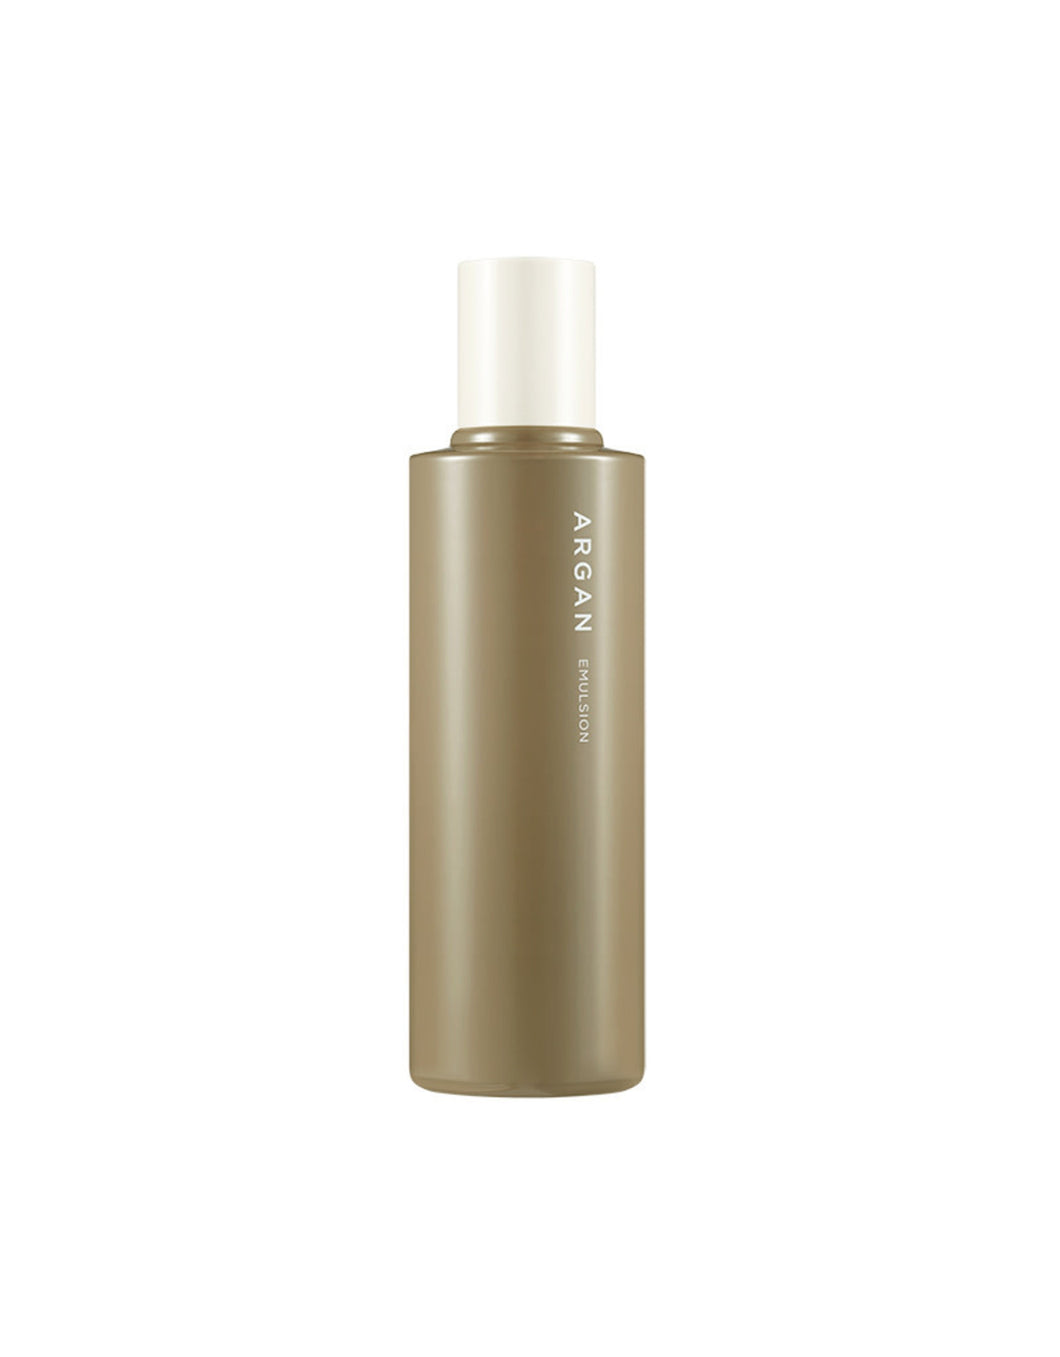 Argan Homme Emulsion